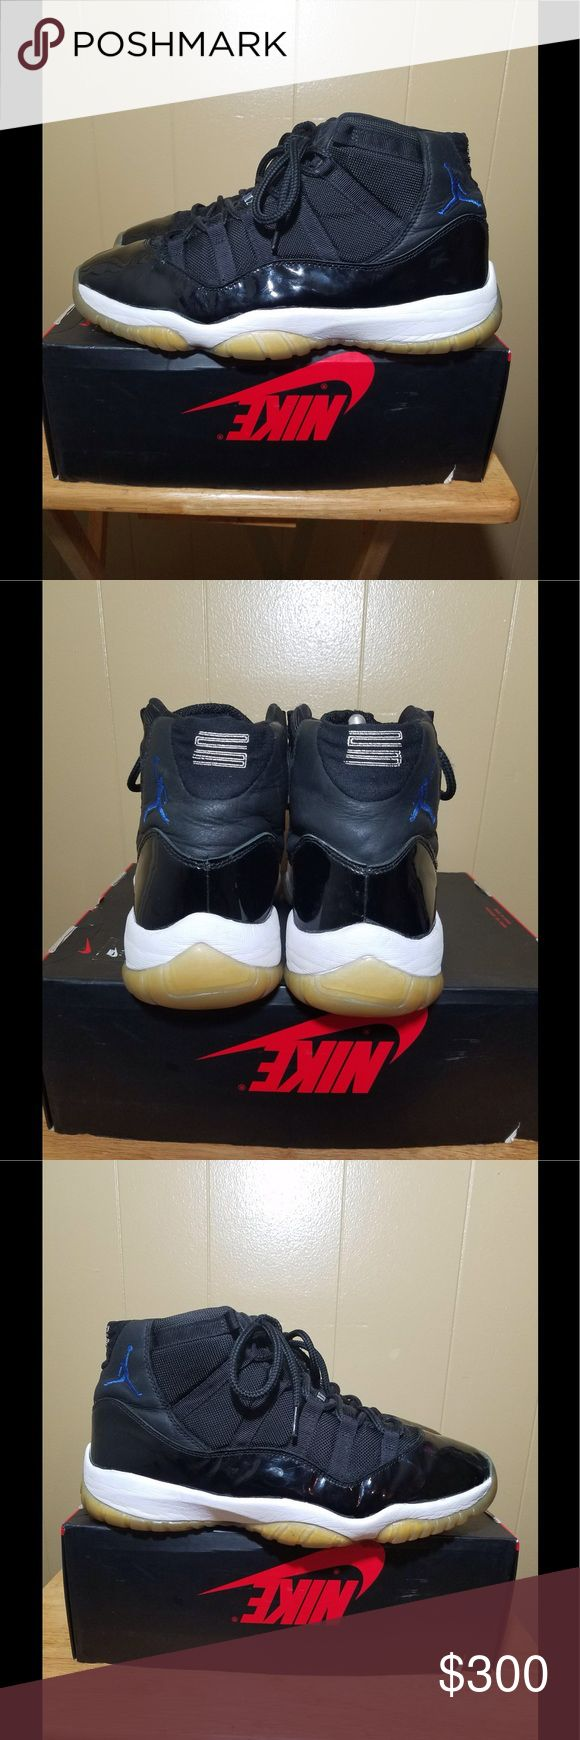 """(OG) Air Jordan 11 """"spacejams"""" (2000 release) -mens size : 12⬅️ -colorway:Black/Varsity Royal-White -stylecode:136046-041 -Release Date:12/13/2000⬅️ - ORIGINAL SPACEJAM RELEASE!  -no box** -➡️AMAZING CONDITION ( slight creasing,yellowing) -100%wearable(unbelievably preserved 17 year old shoe) -GRAILS TO ALL TRUE SHOE COLLECTORS (small piece of history!) -100% authentic ( I REPEAT 100% authentic)⬅️ -🚫no trades🚫 -▶️▶▶️️Open to serious offers via the """" offer"""" feature◀️◀️◀️ - low-ballers will…"""